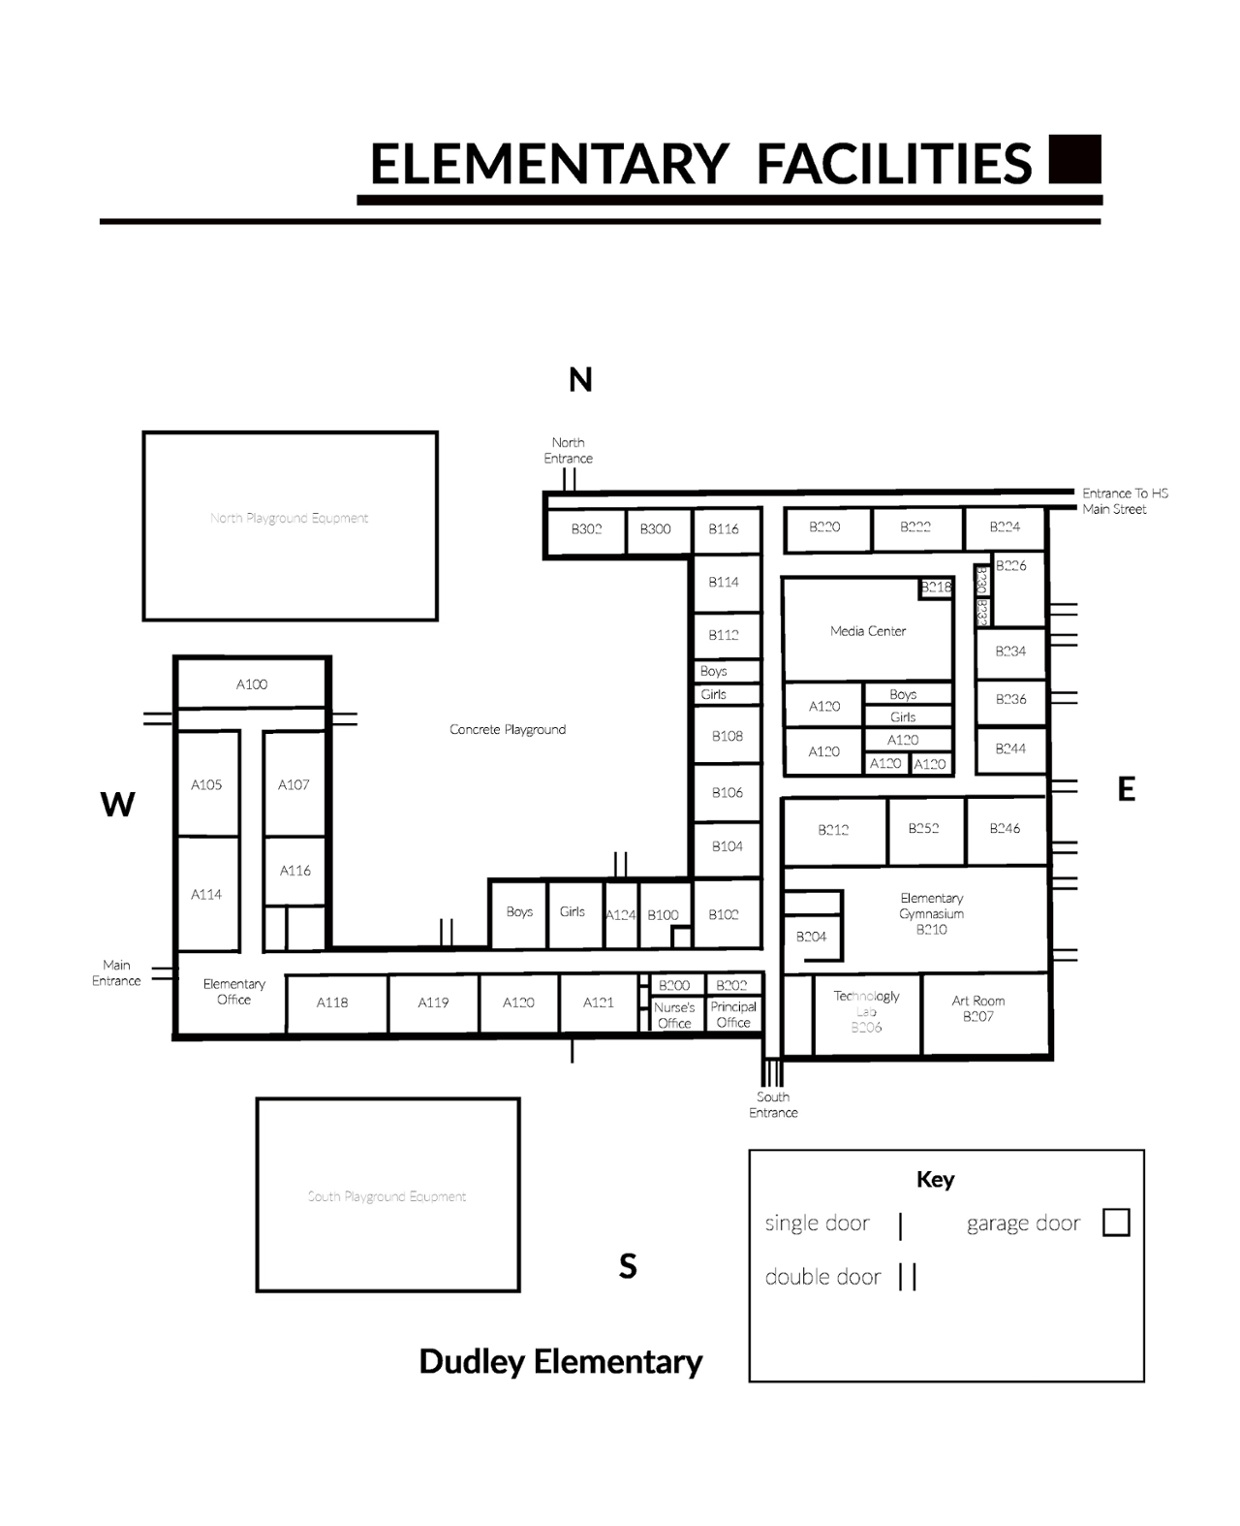 Dudley Elementary Interactive Map